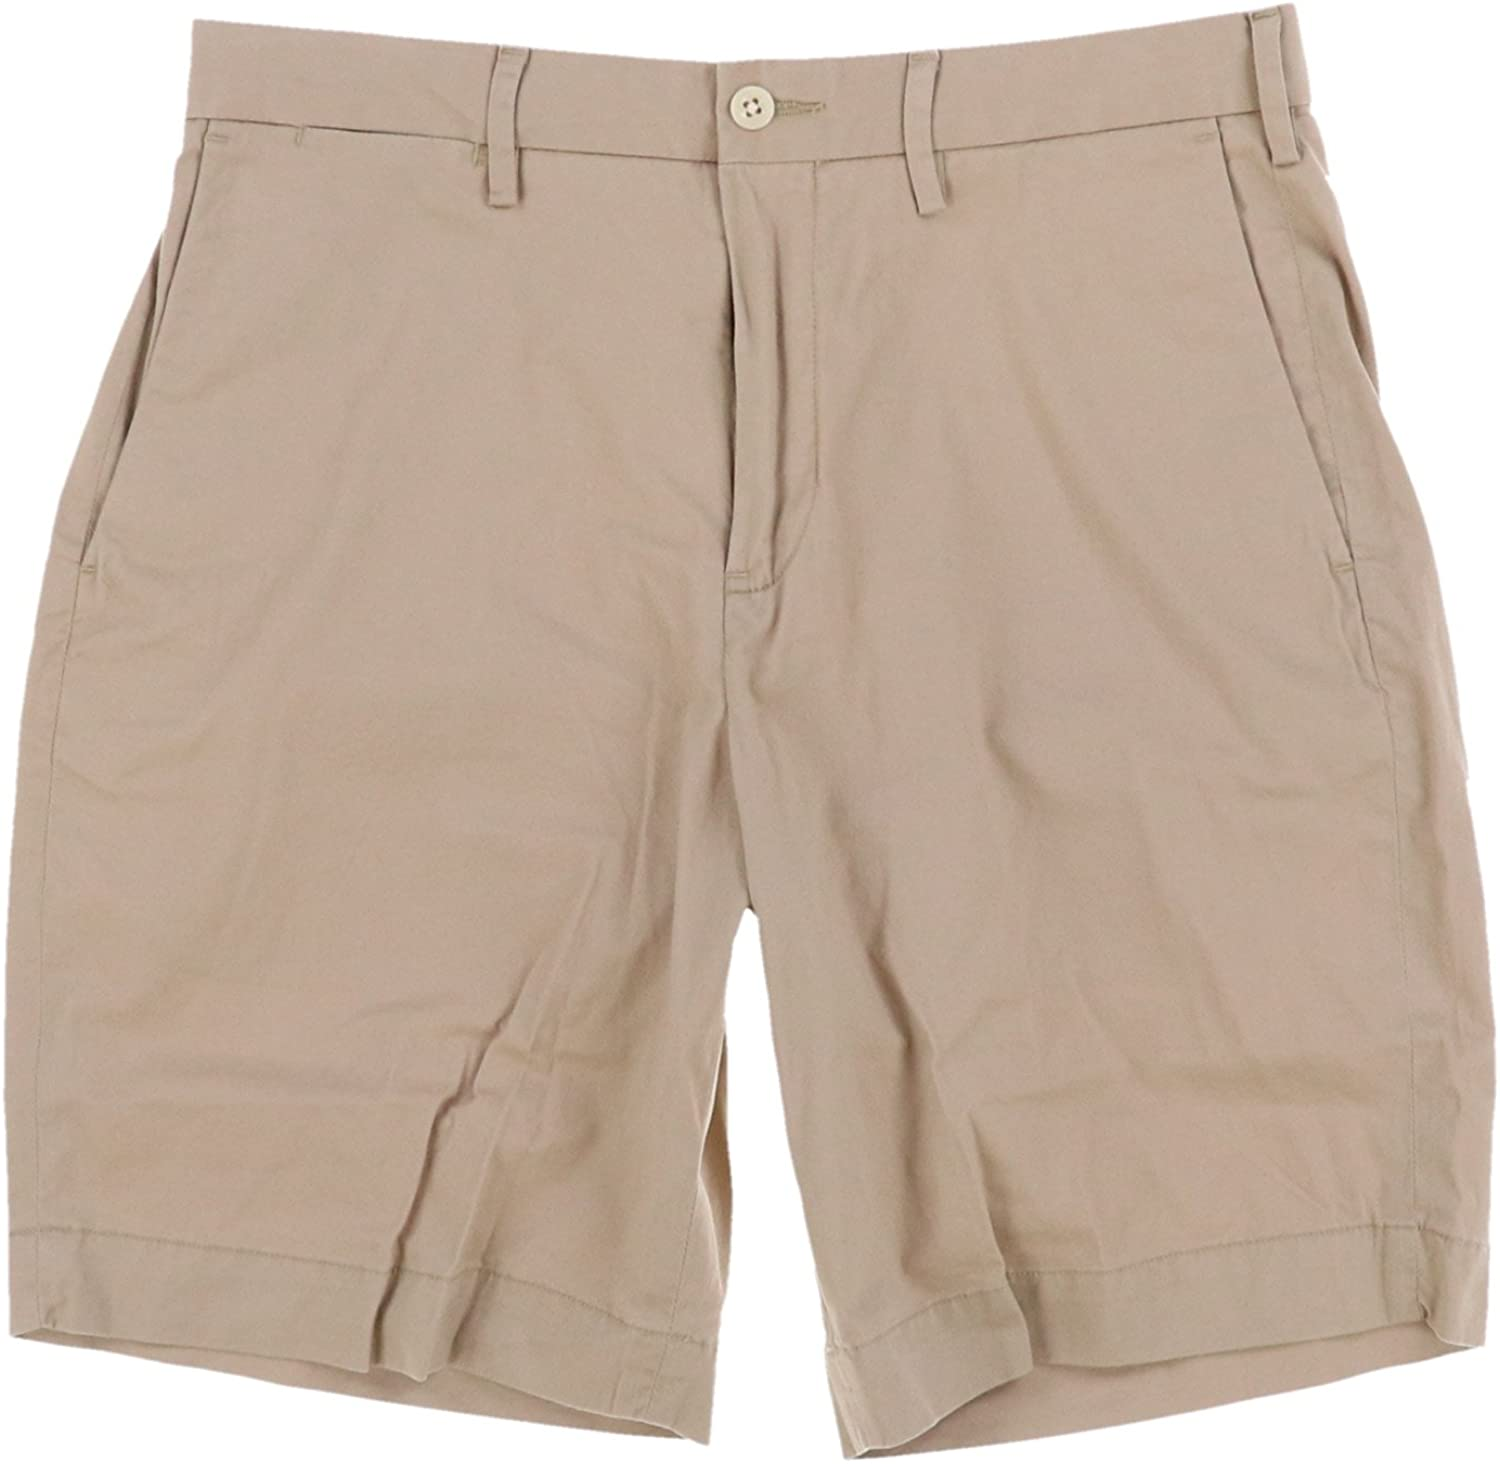 Polo Ralph Lauren Mens Stretch Classic Fit Chino Shorts (30, Beige)